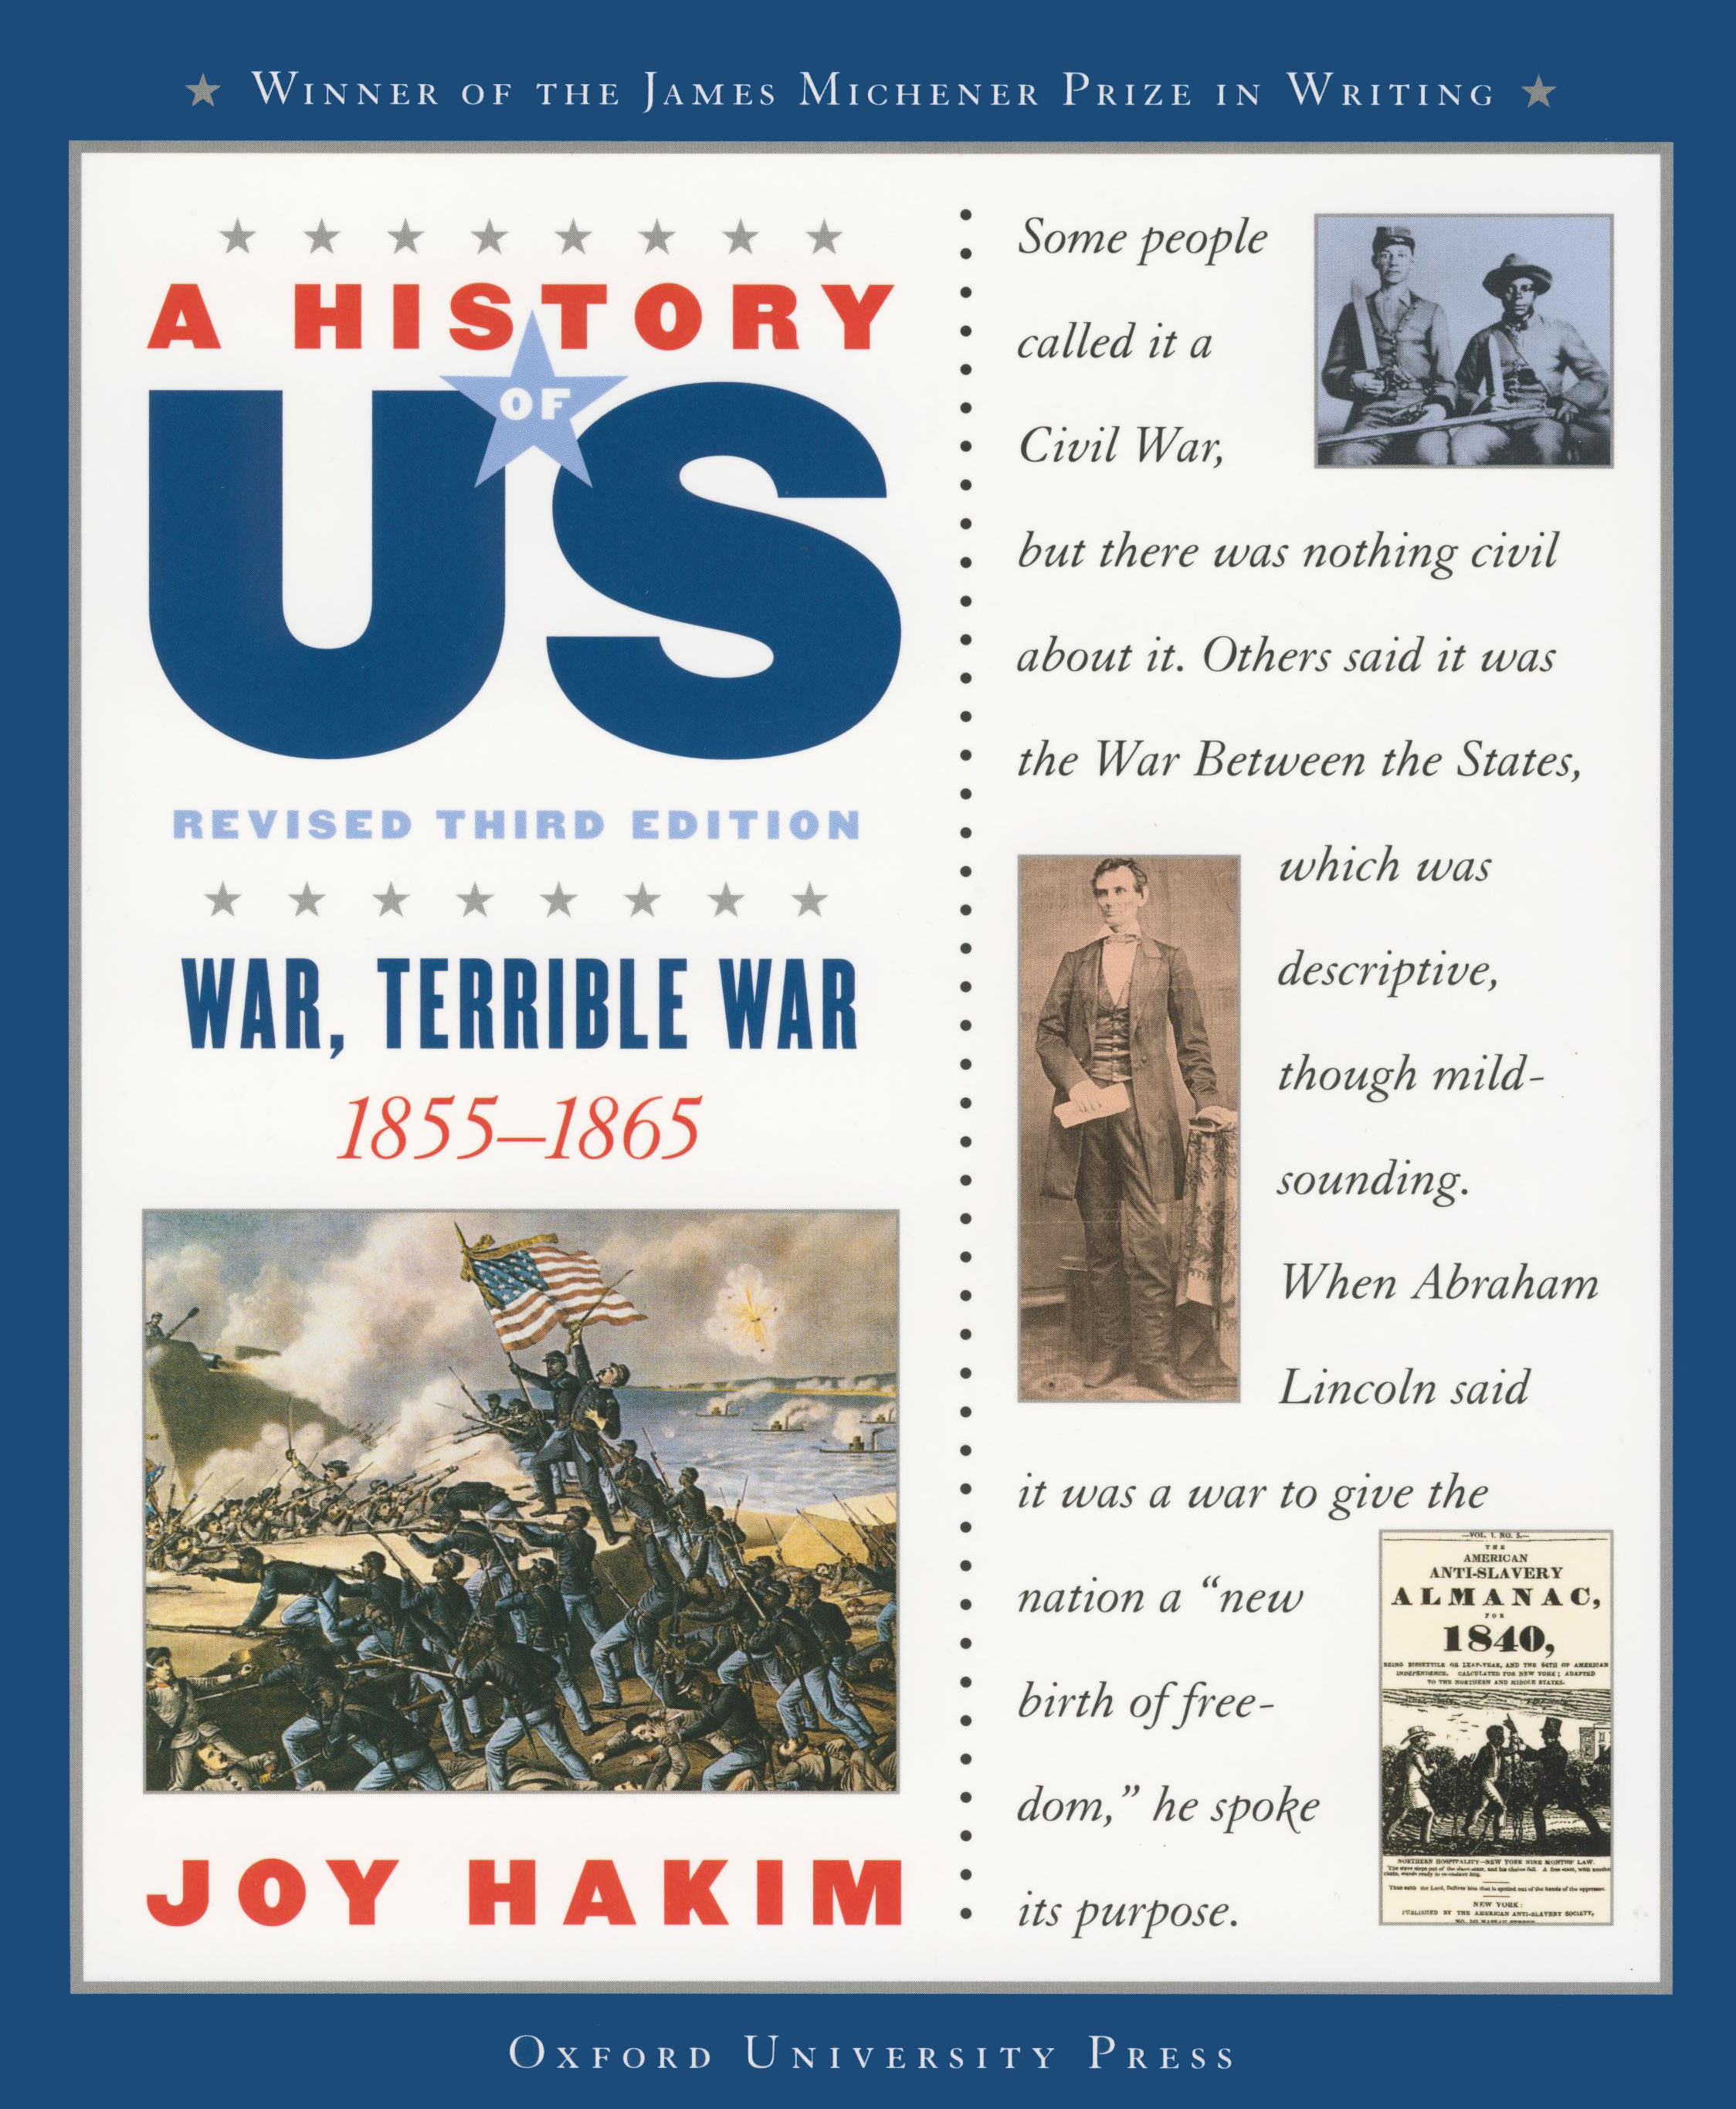 A History of US: War, Terrible War, 1855-1865 Reference Book